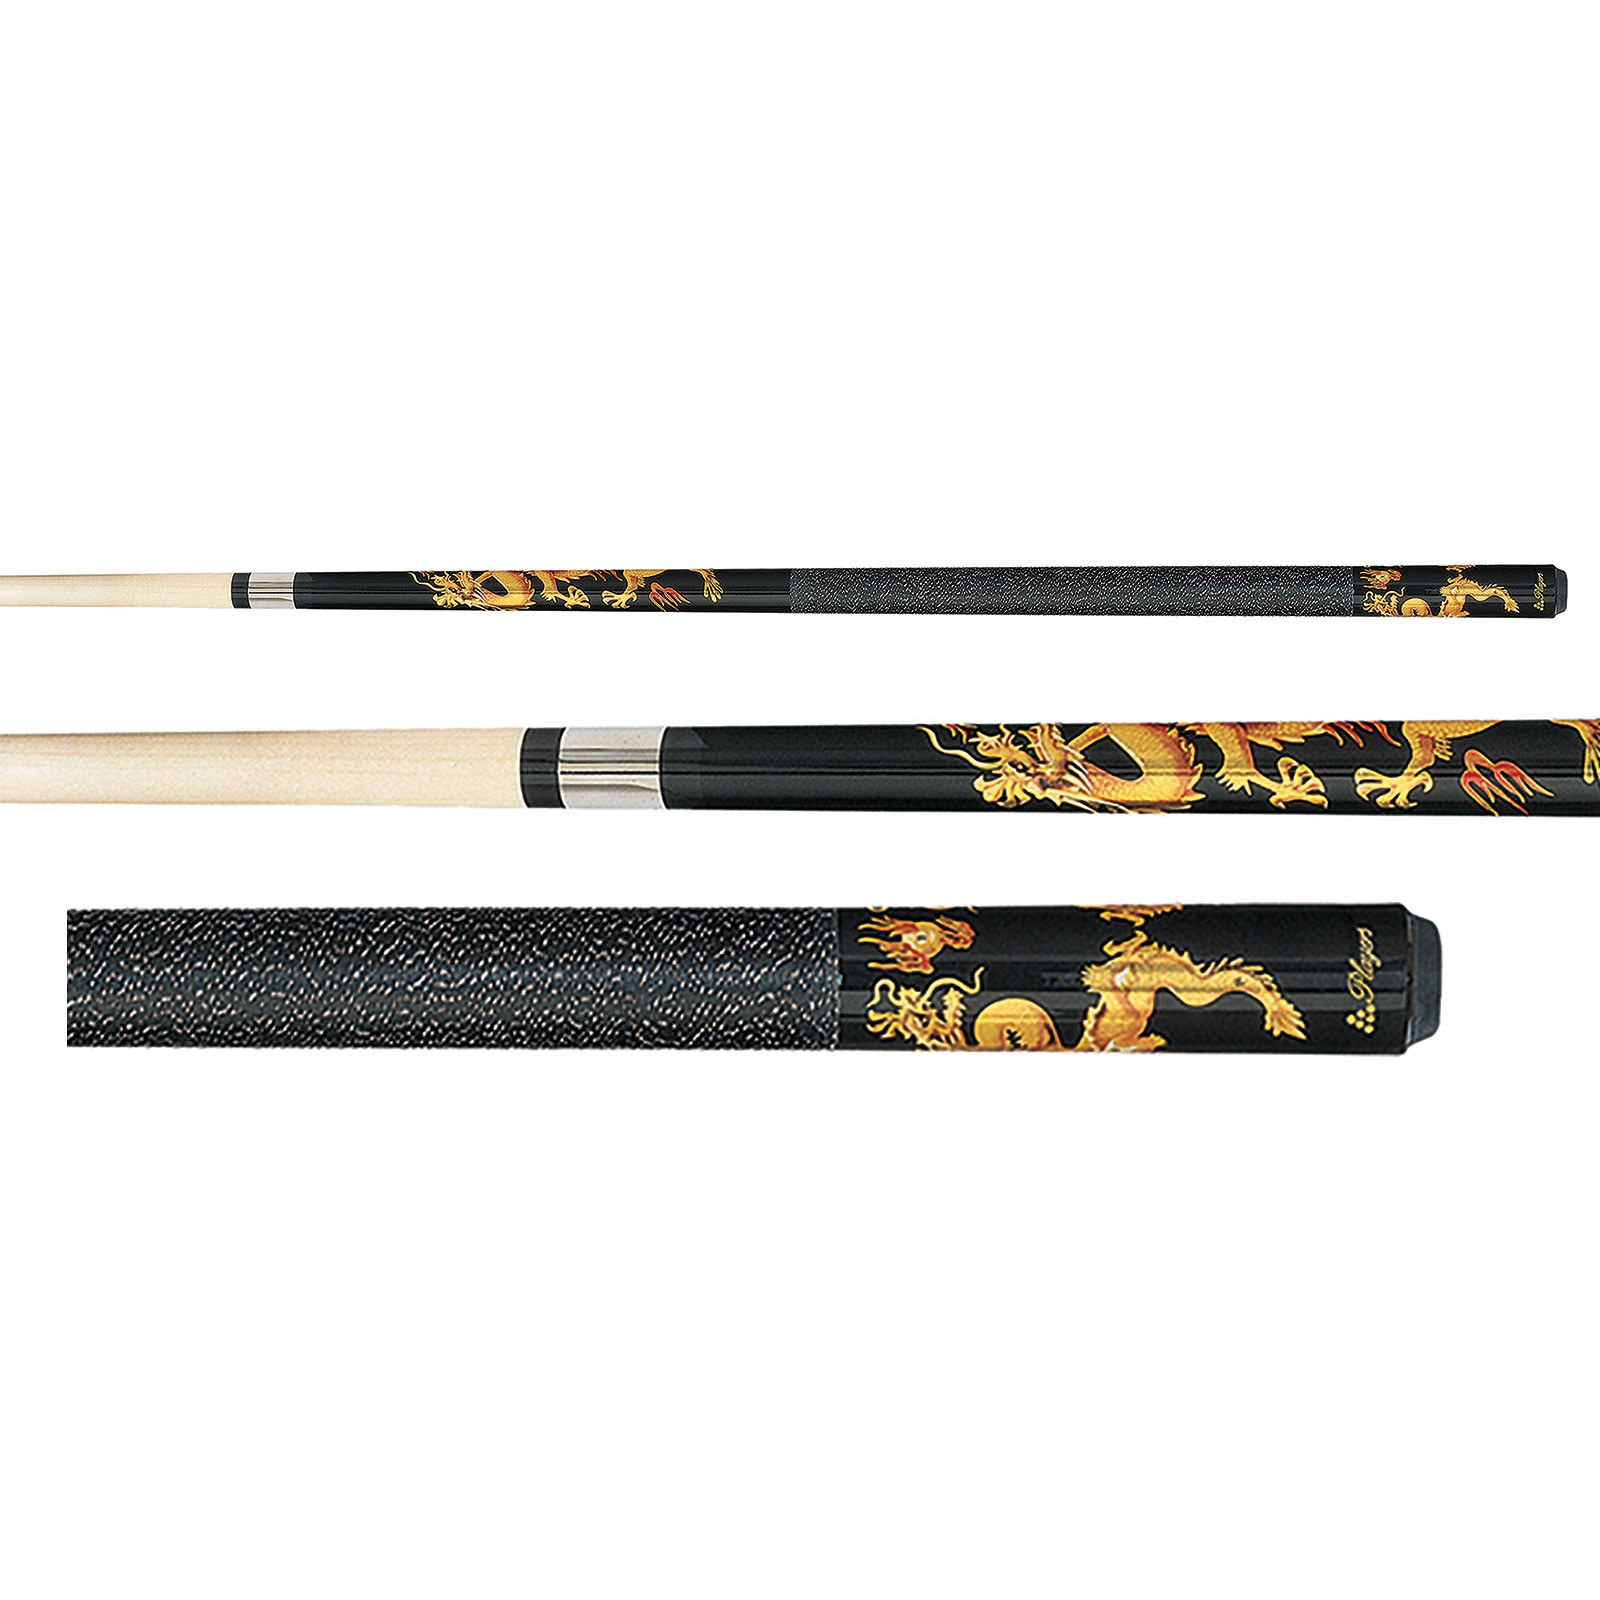 Players D Drg Dragon Graphic Pool Cue Stick